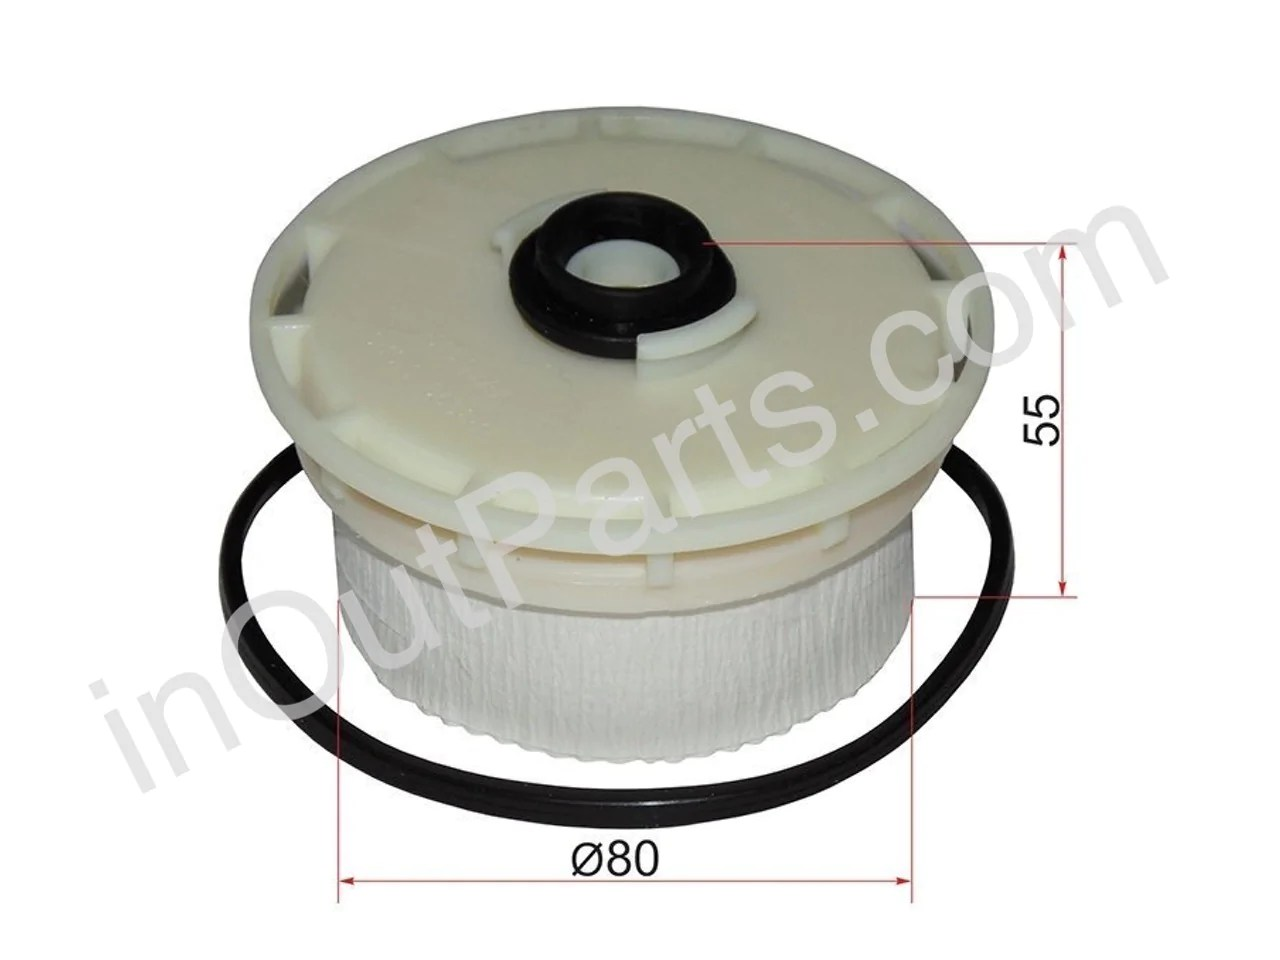 small resolution of fuel filter diesel fits toyota land cruiser 200 2007 2008 2009 2010 2011 2012 2013 2014 2015 2016